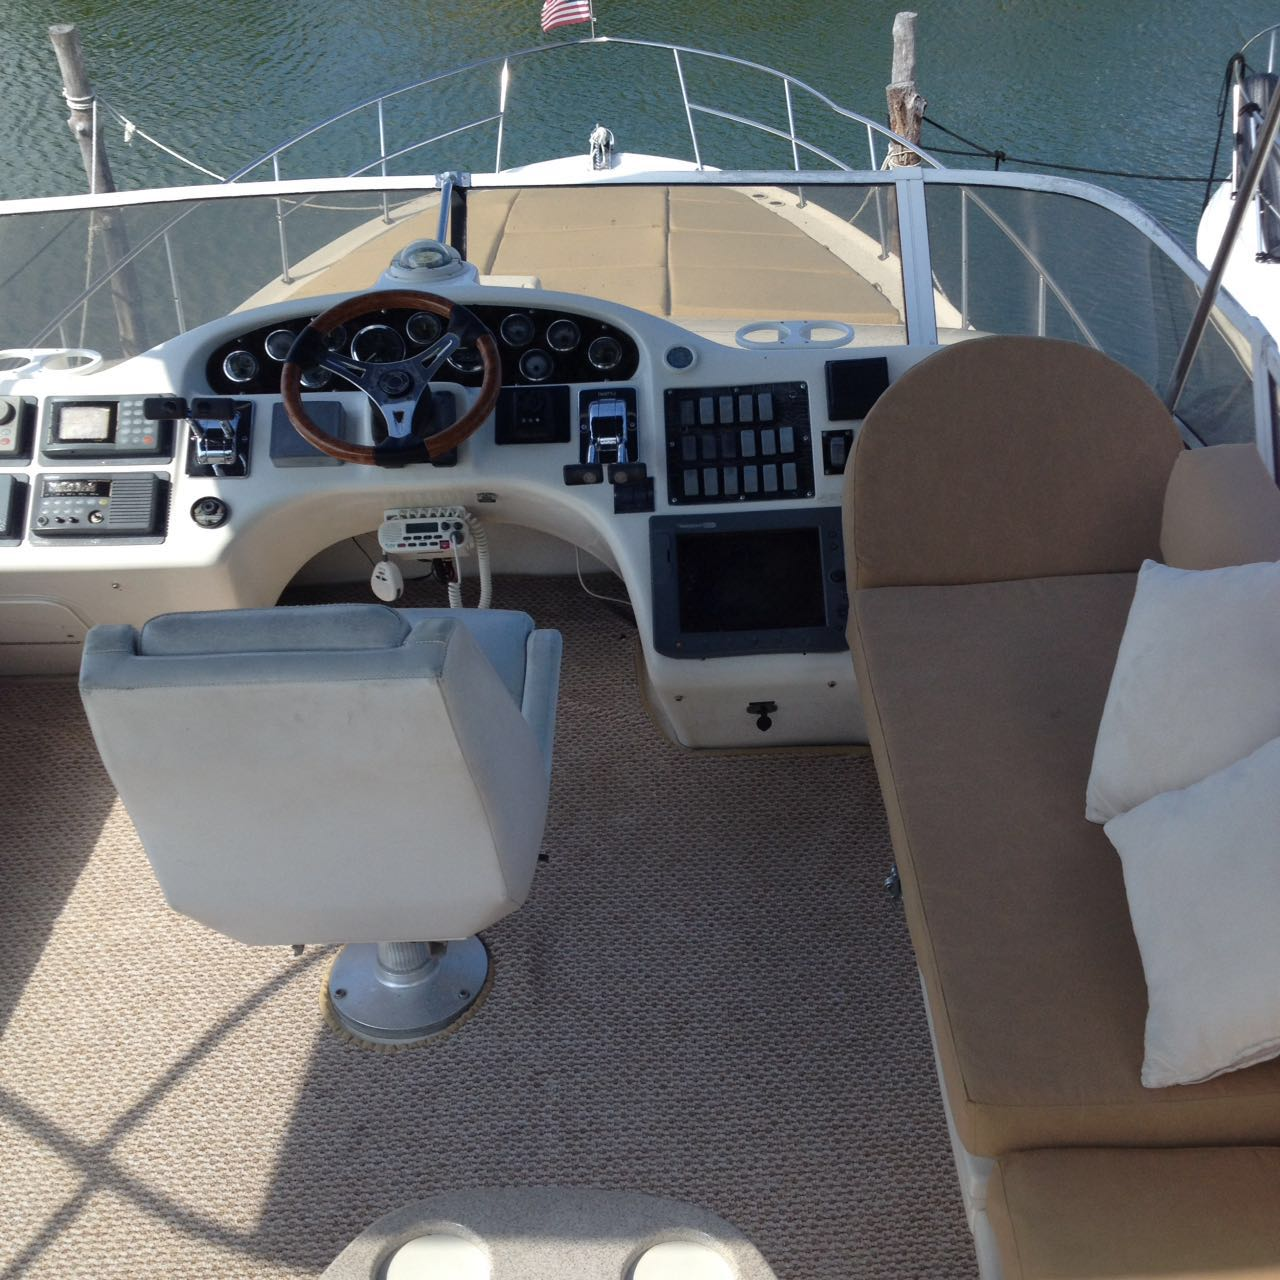 Yacht Charters in Cancun private Luxury fishing yacht charter in cancun sport fishing isla mujeres puerto morelos puerto aventuras cozumel fishing boat fishing charter fishing trip Caribbean Sea Ray 48 Feet in cancun bachelorette party flydeck